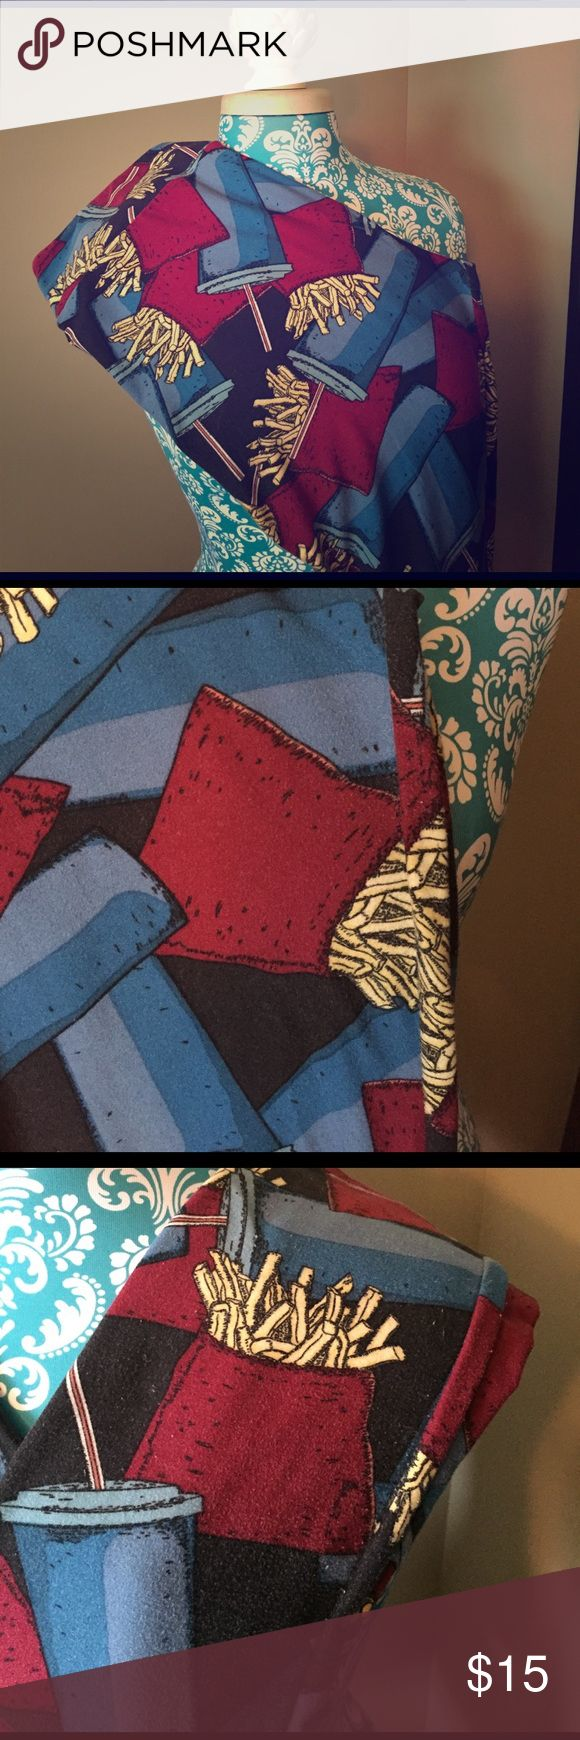 "LuLaRoe TC Fry & Drink Leggings  LuLaRoe TC Fry & Drink Leggings. I can no longer wear TC leggings. Black background with blue and teal cups and maroon/yellow French fries. I wore these out of the house once to the movies & mostly as pjs. They have been worn a handful of times and I have noticed several dark pair of LLR seem to fade instantly. There are signs of wear, some piling and fading as seen in the pics. I have not tried to ""shave"" any of it. They have only been washed per LLR…"